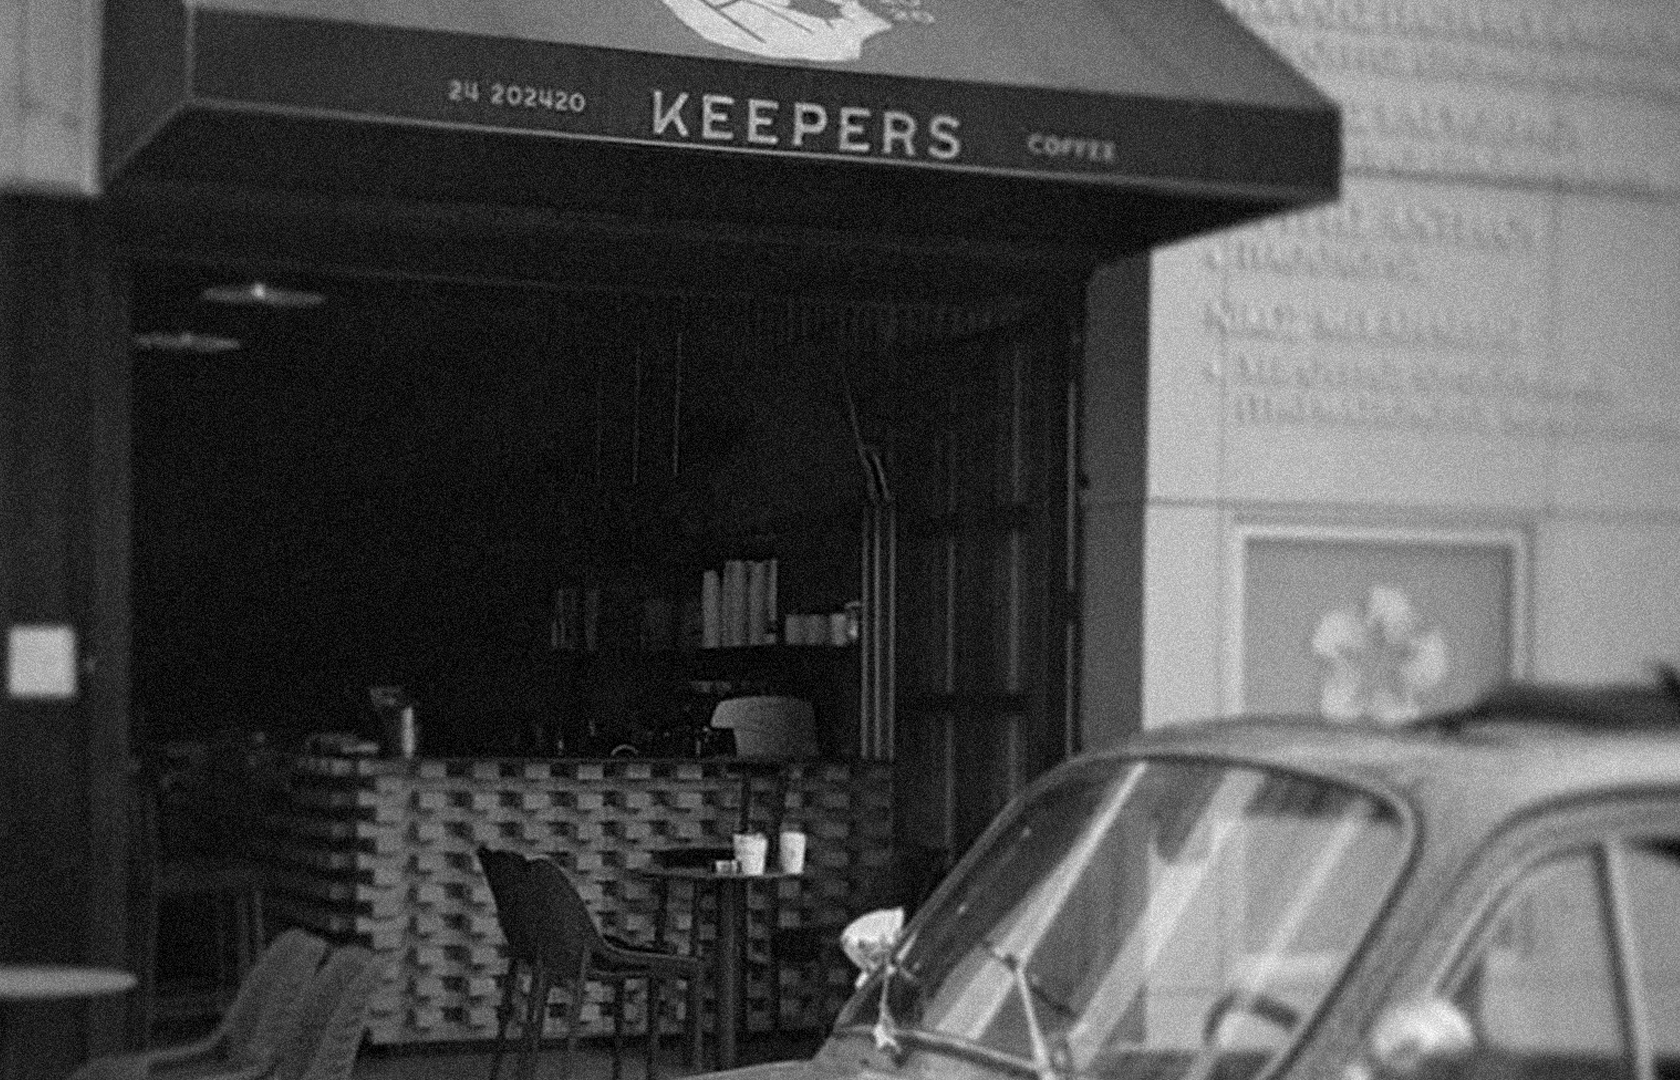 keepers: everyday coffee